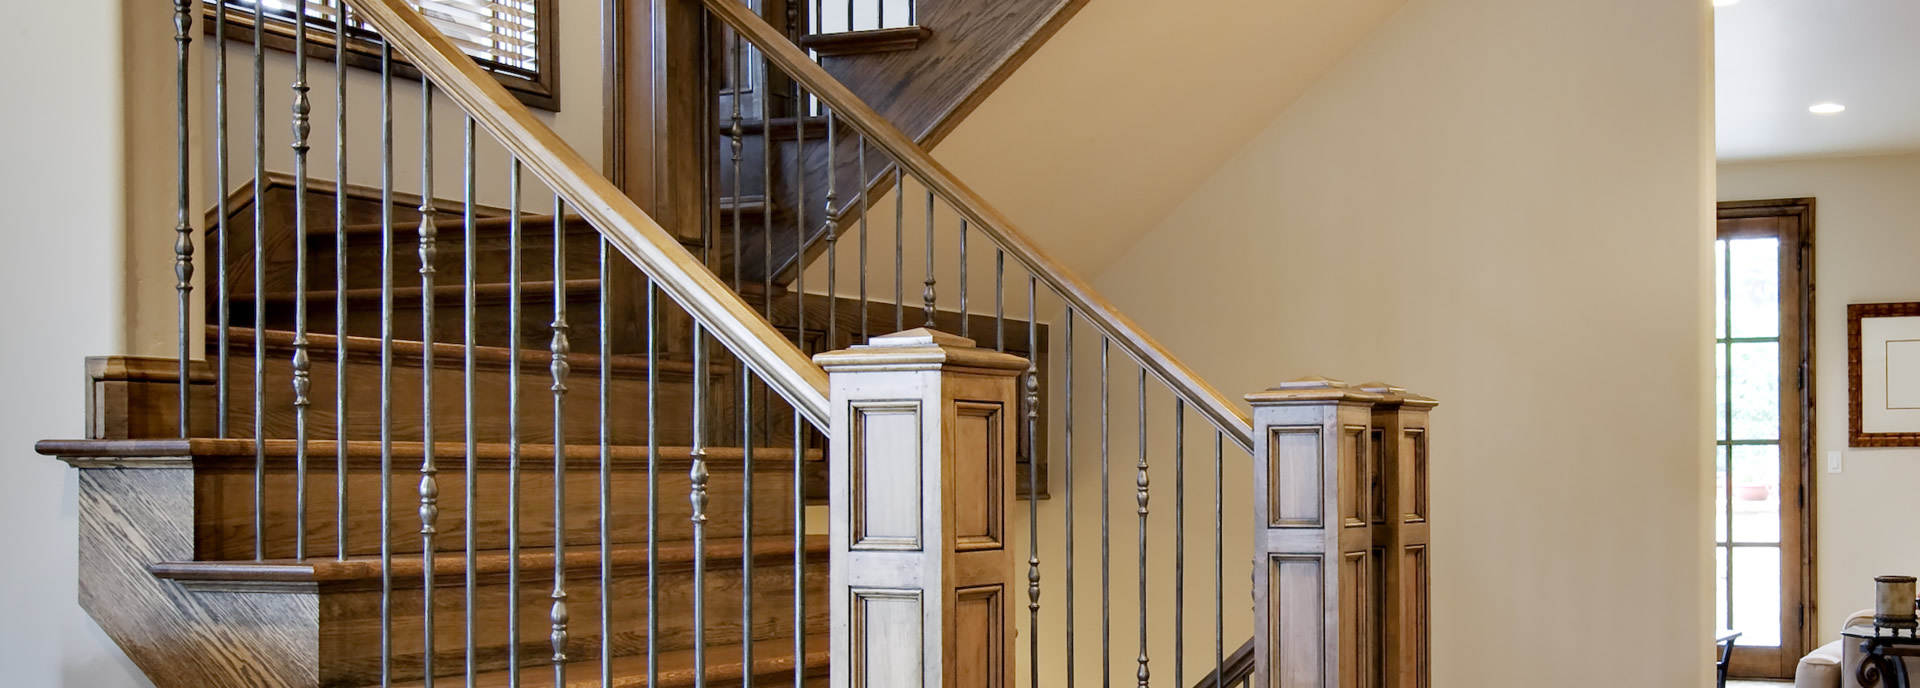 Artful Staircases: Adding Appeal To Your Space Alpharetta, GA